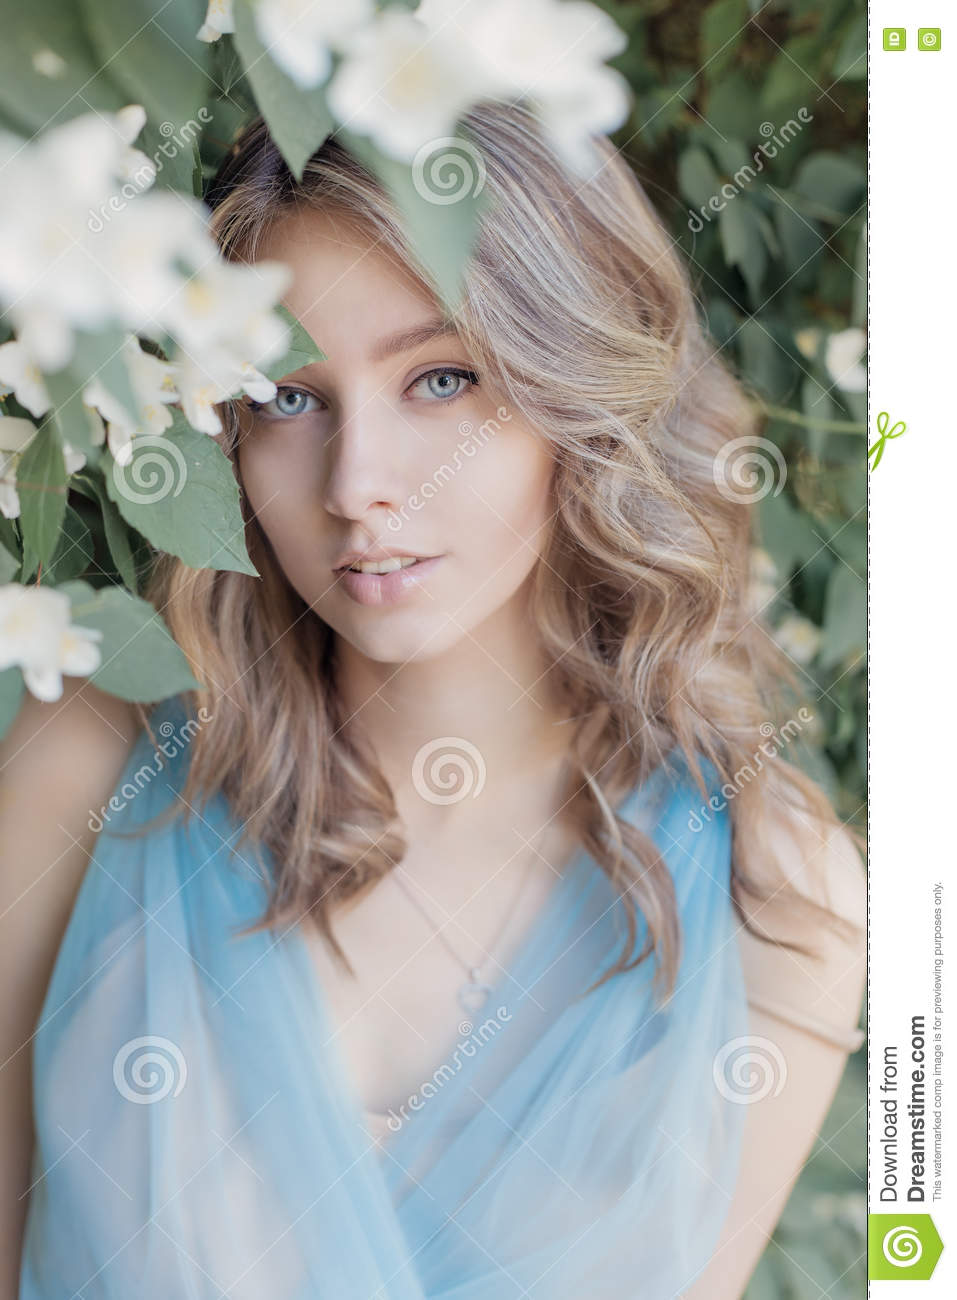 Beautiful sweet tender girl with blue eyes in a blue dress with beautiful sweet tender girl with blue eyes in a blue dress with light hair stranded in jasmine flowers stock photo 74697806 megapixl izmirmasajfo